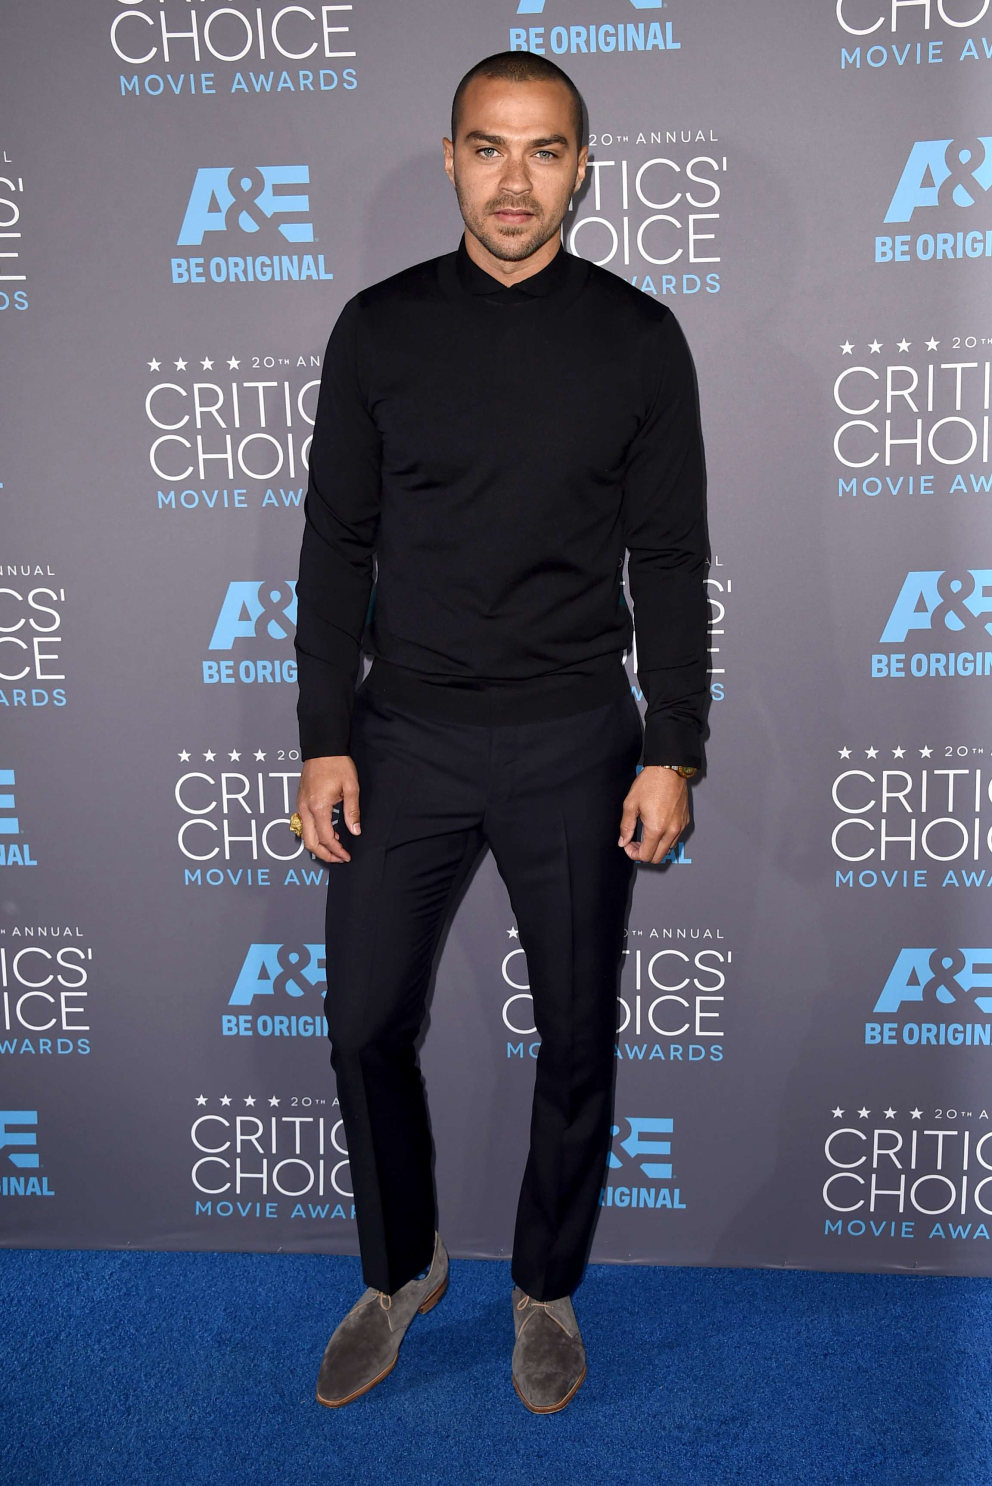 Ellen Pompeo, Patrick Dempsey, Jesse Williams : les acteurs de Grey's Anatomy sur le tapis rouge